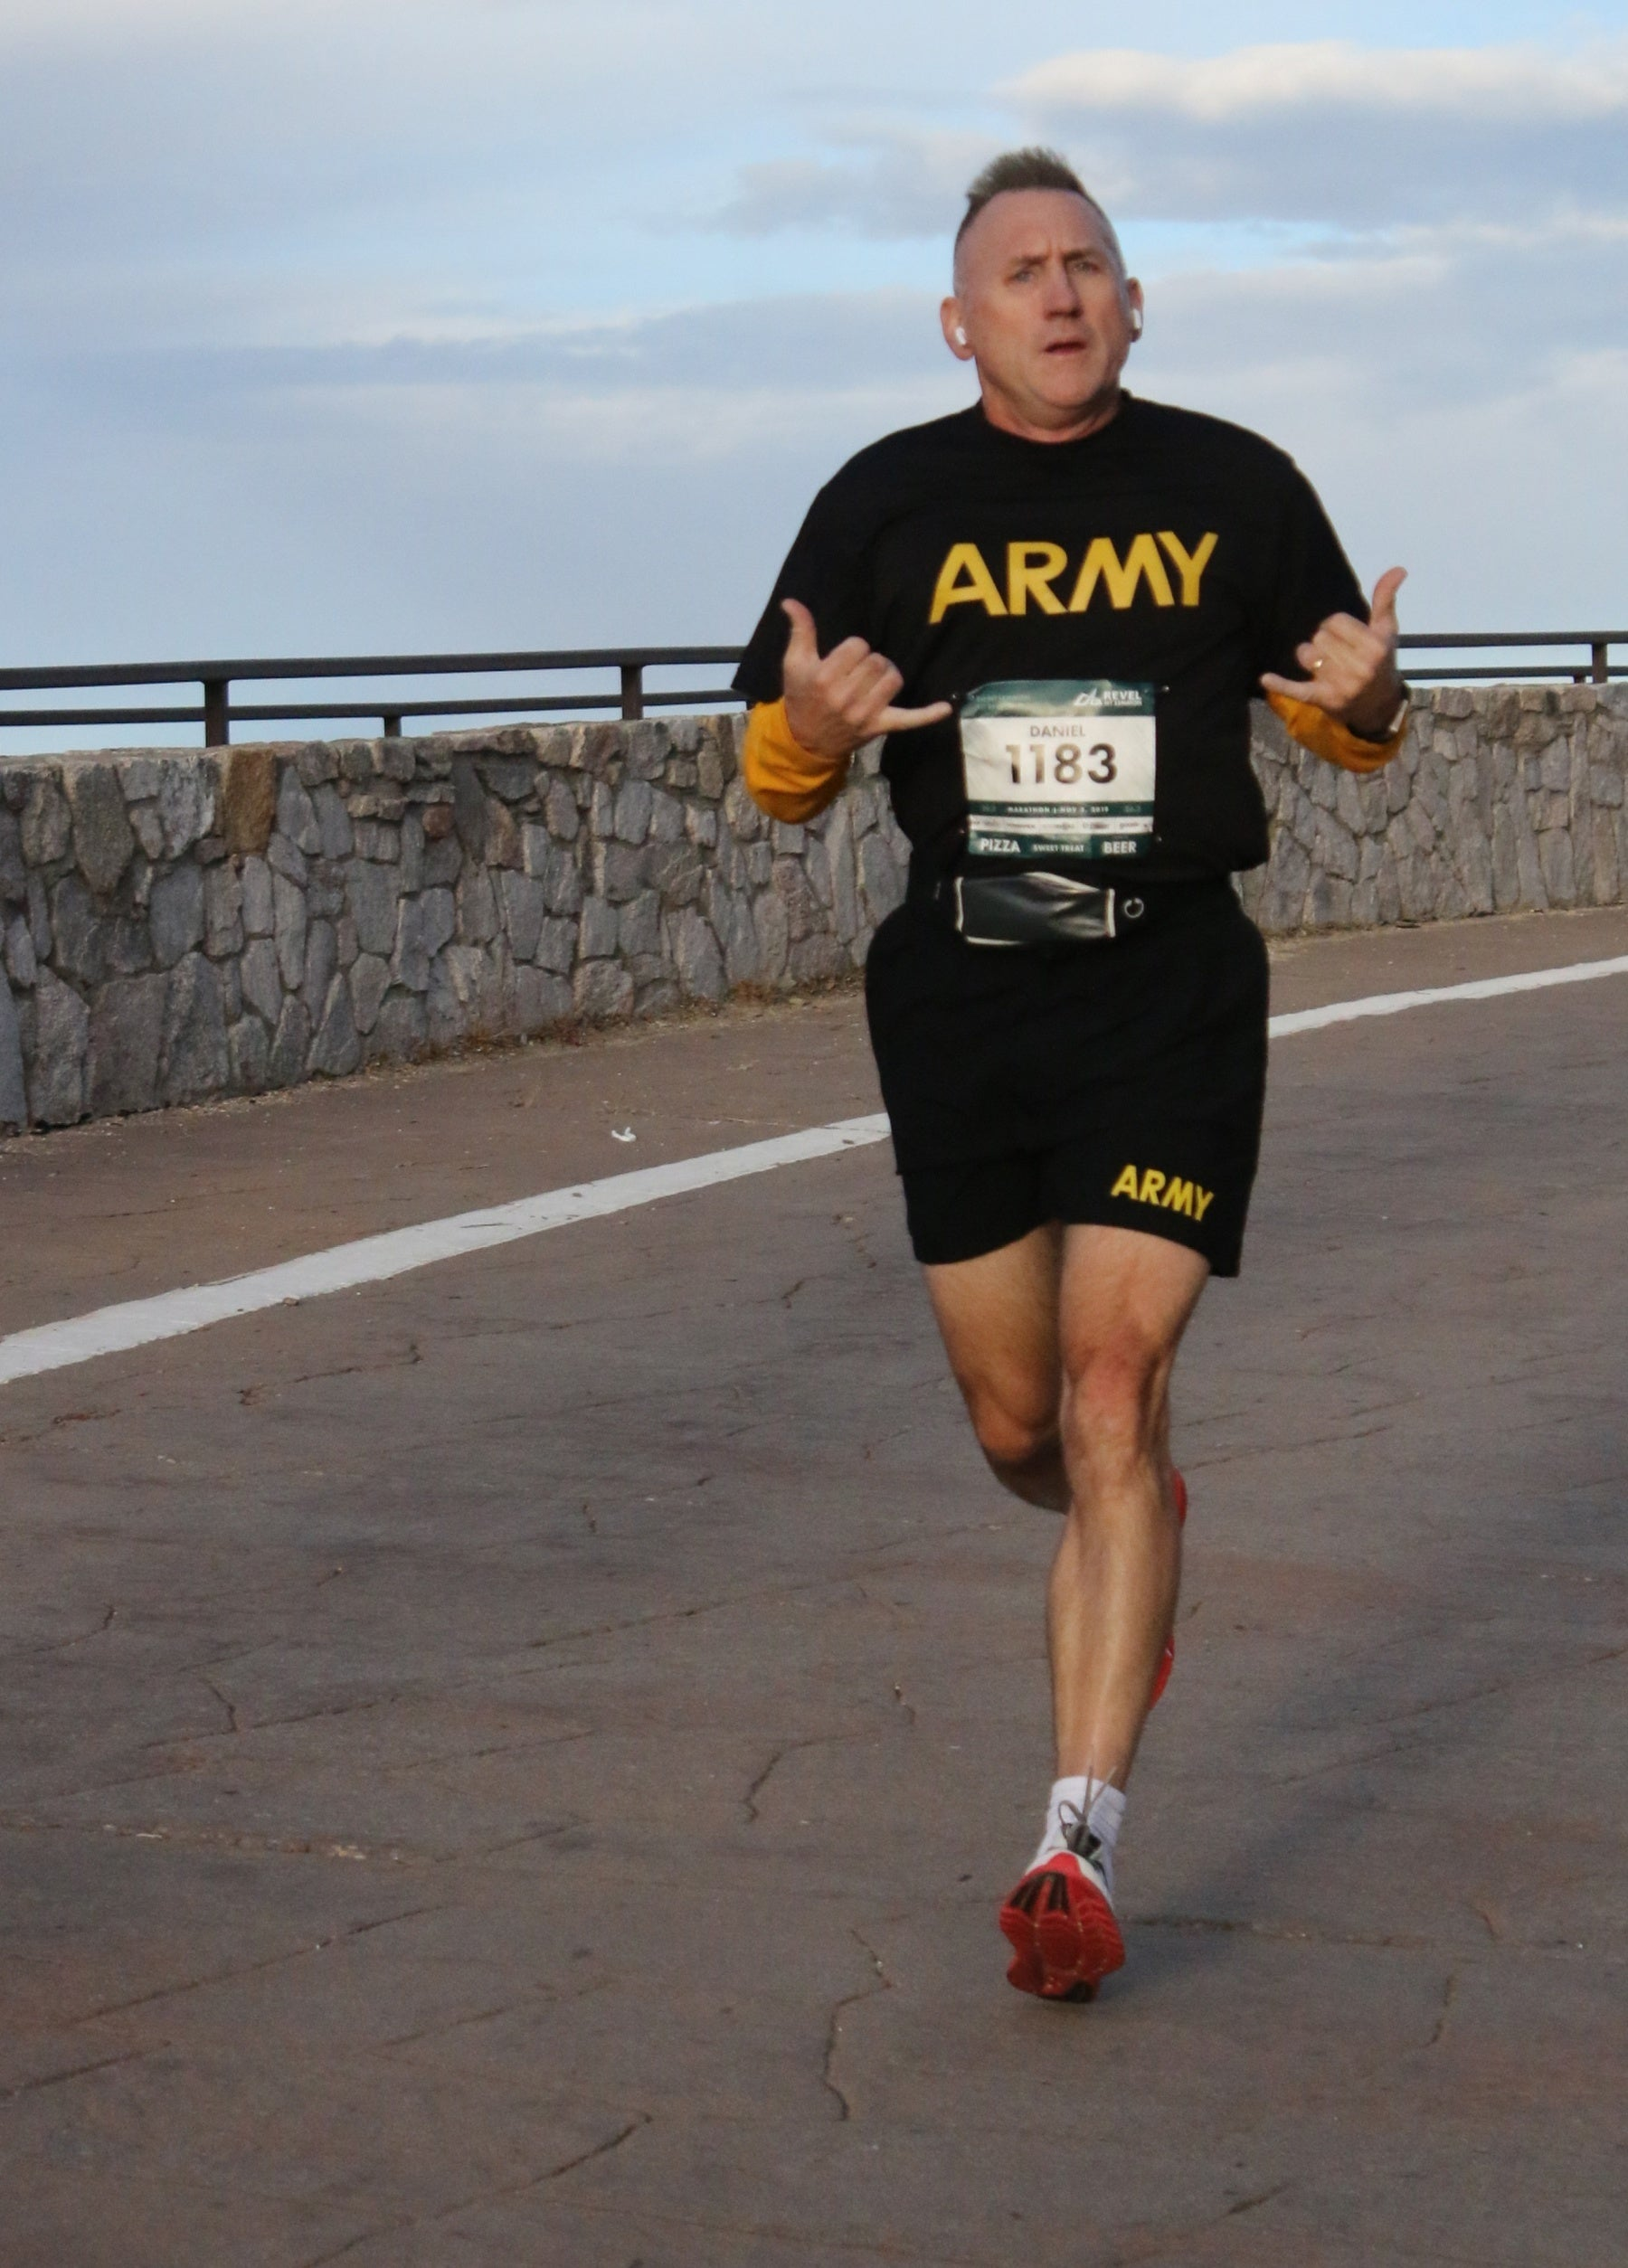 Army soldier pushes limits to reach insane running goal